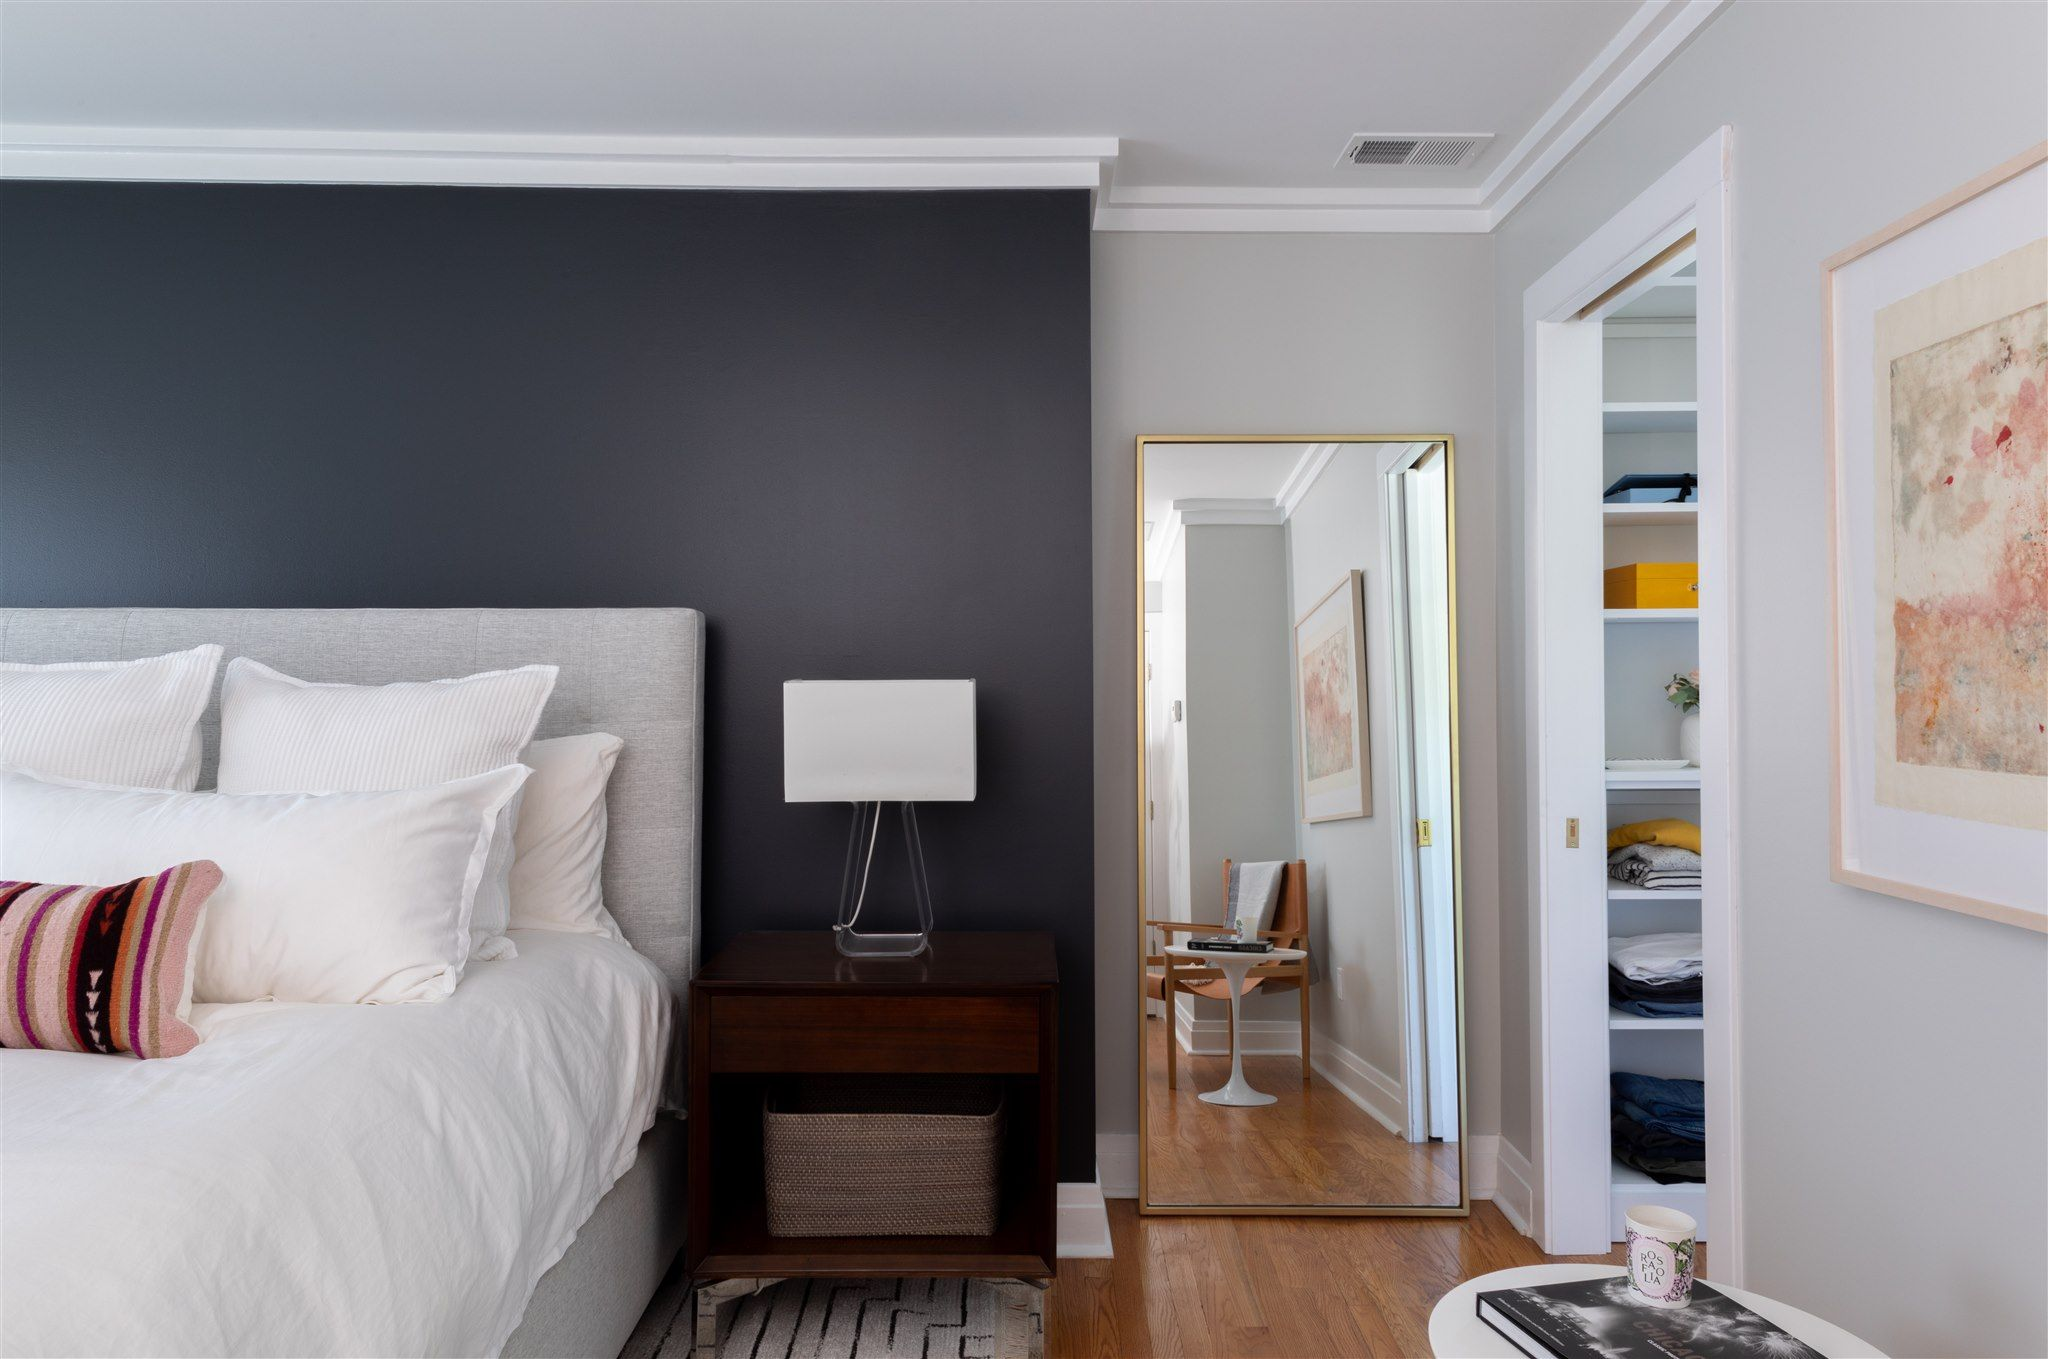 In The Bedroom We Pulled In A Black Accent Wall To Tie Into The Contrast In The Bathroom And Add Black Accent Walls White Bedding Master Bedroom White Bedding